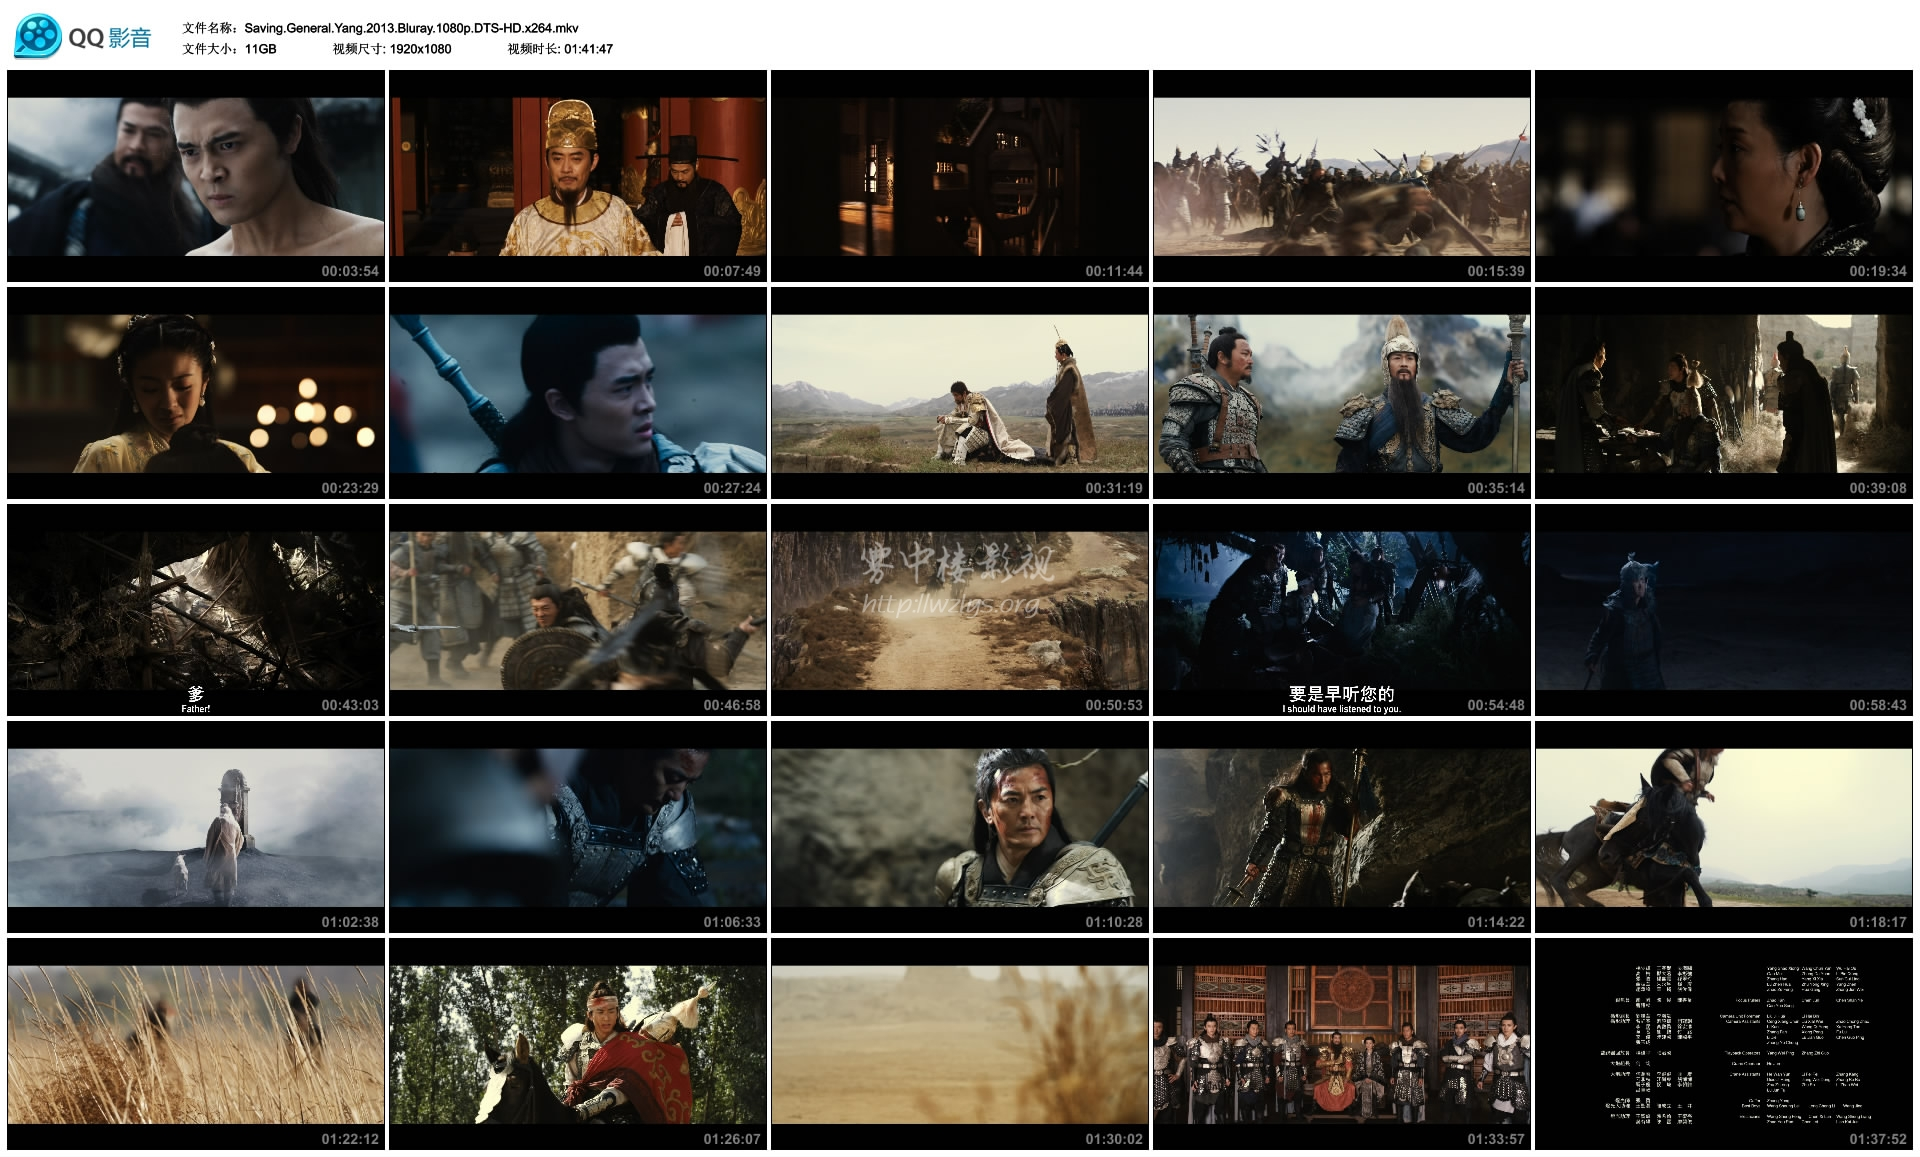 Saving.General.Yang.2013.Bluray.1080p.DTS-HD.x264.mkv_thumbs_2017.11.28.23_02_07.jpg